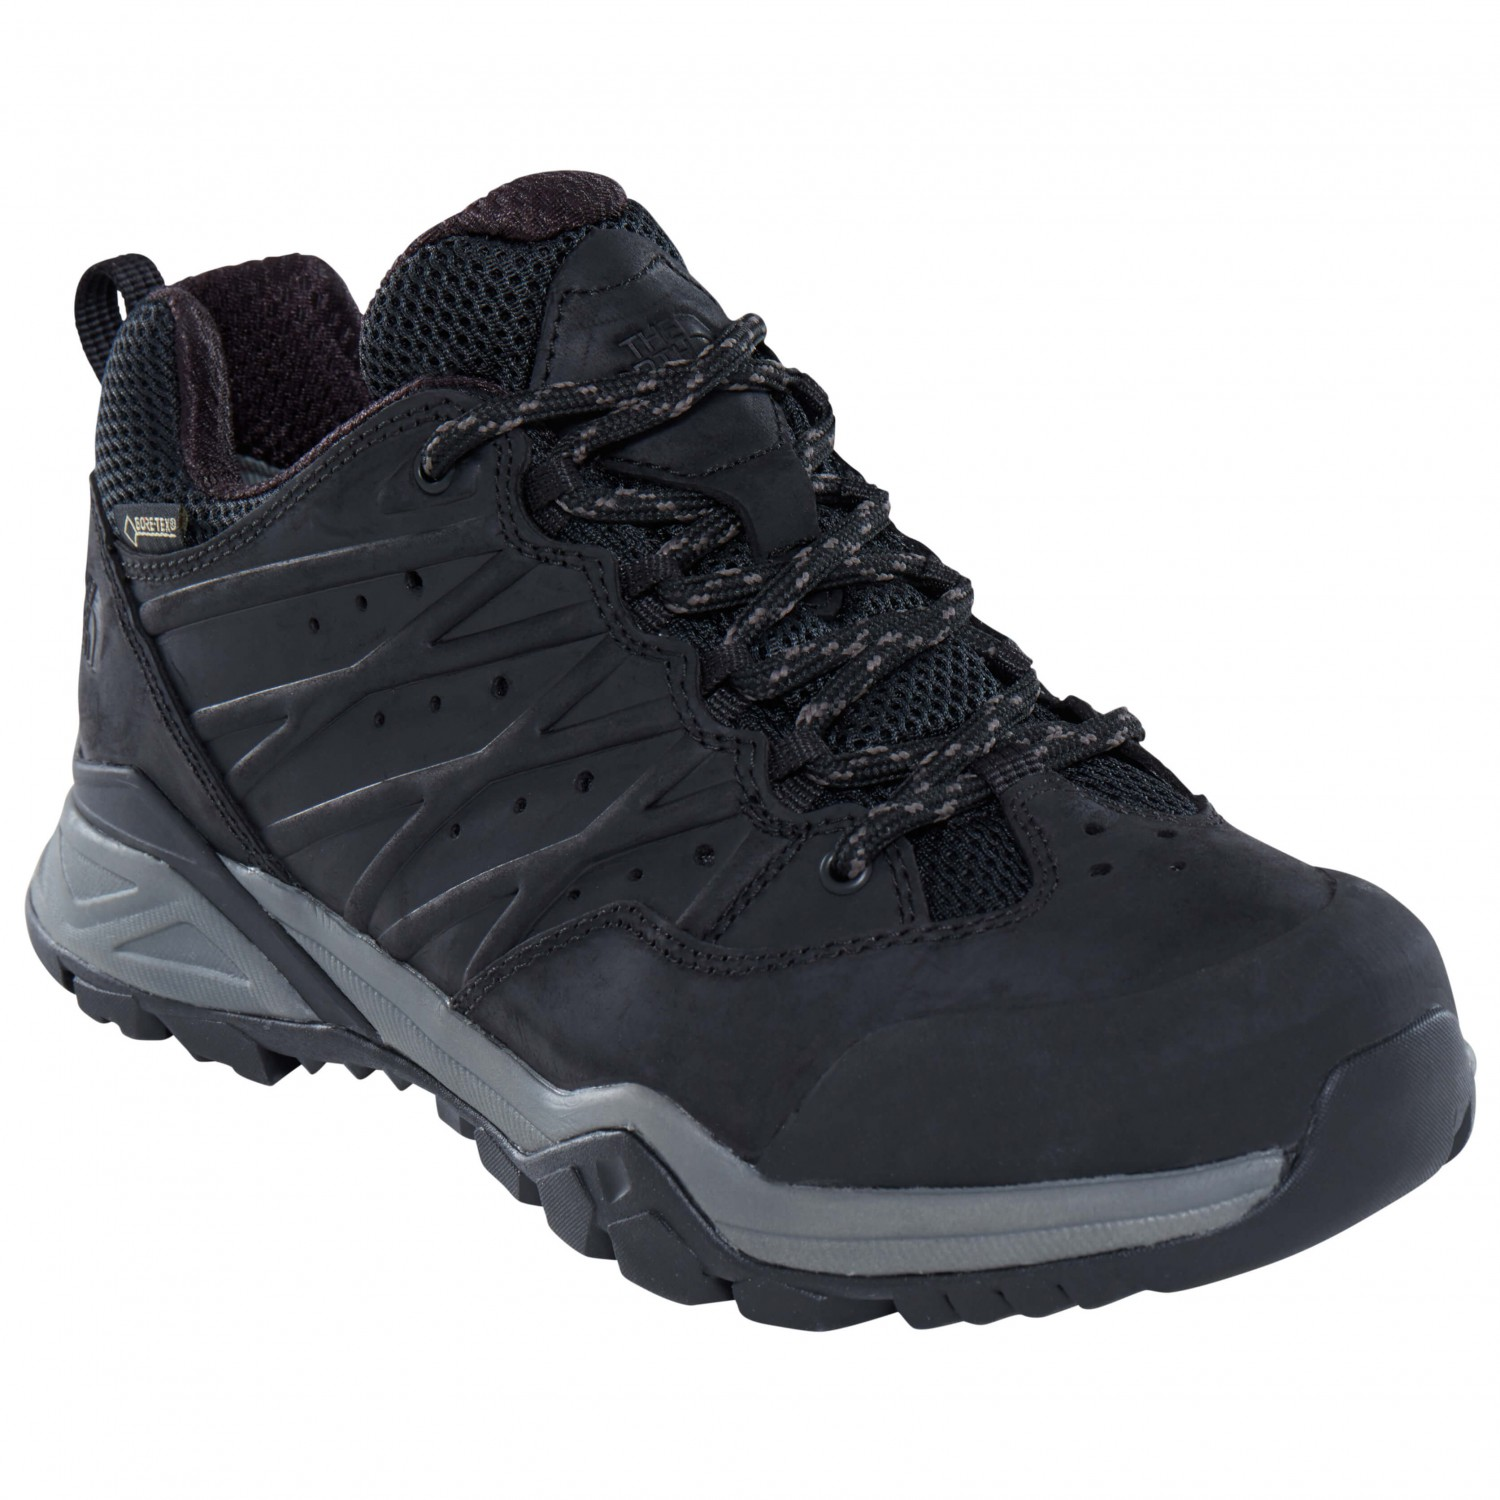 The North Face Hedgehog Hike II GTX Shoes Women TNF Black/TNF Black US 6 dLUs4x9